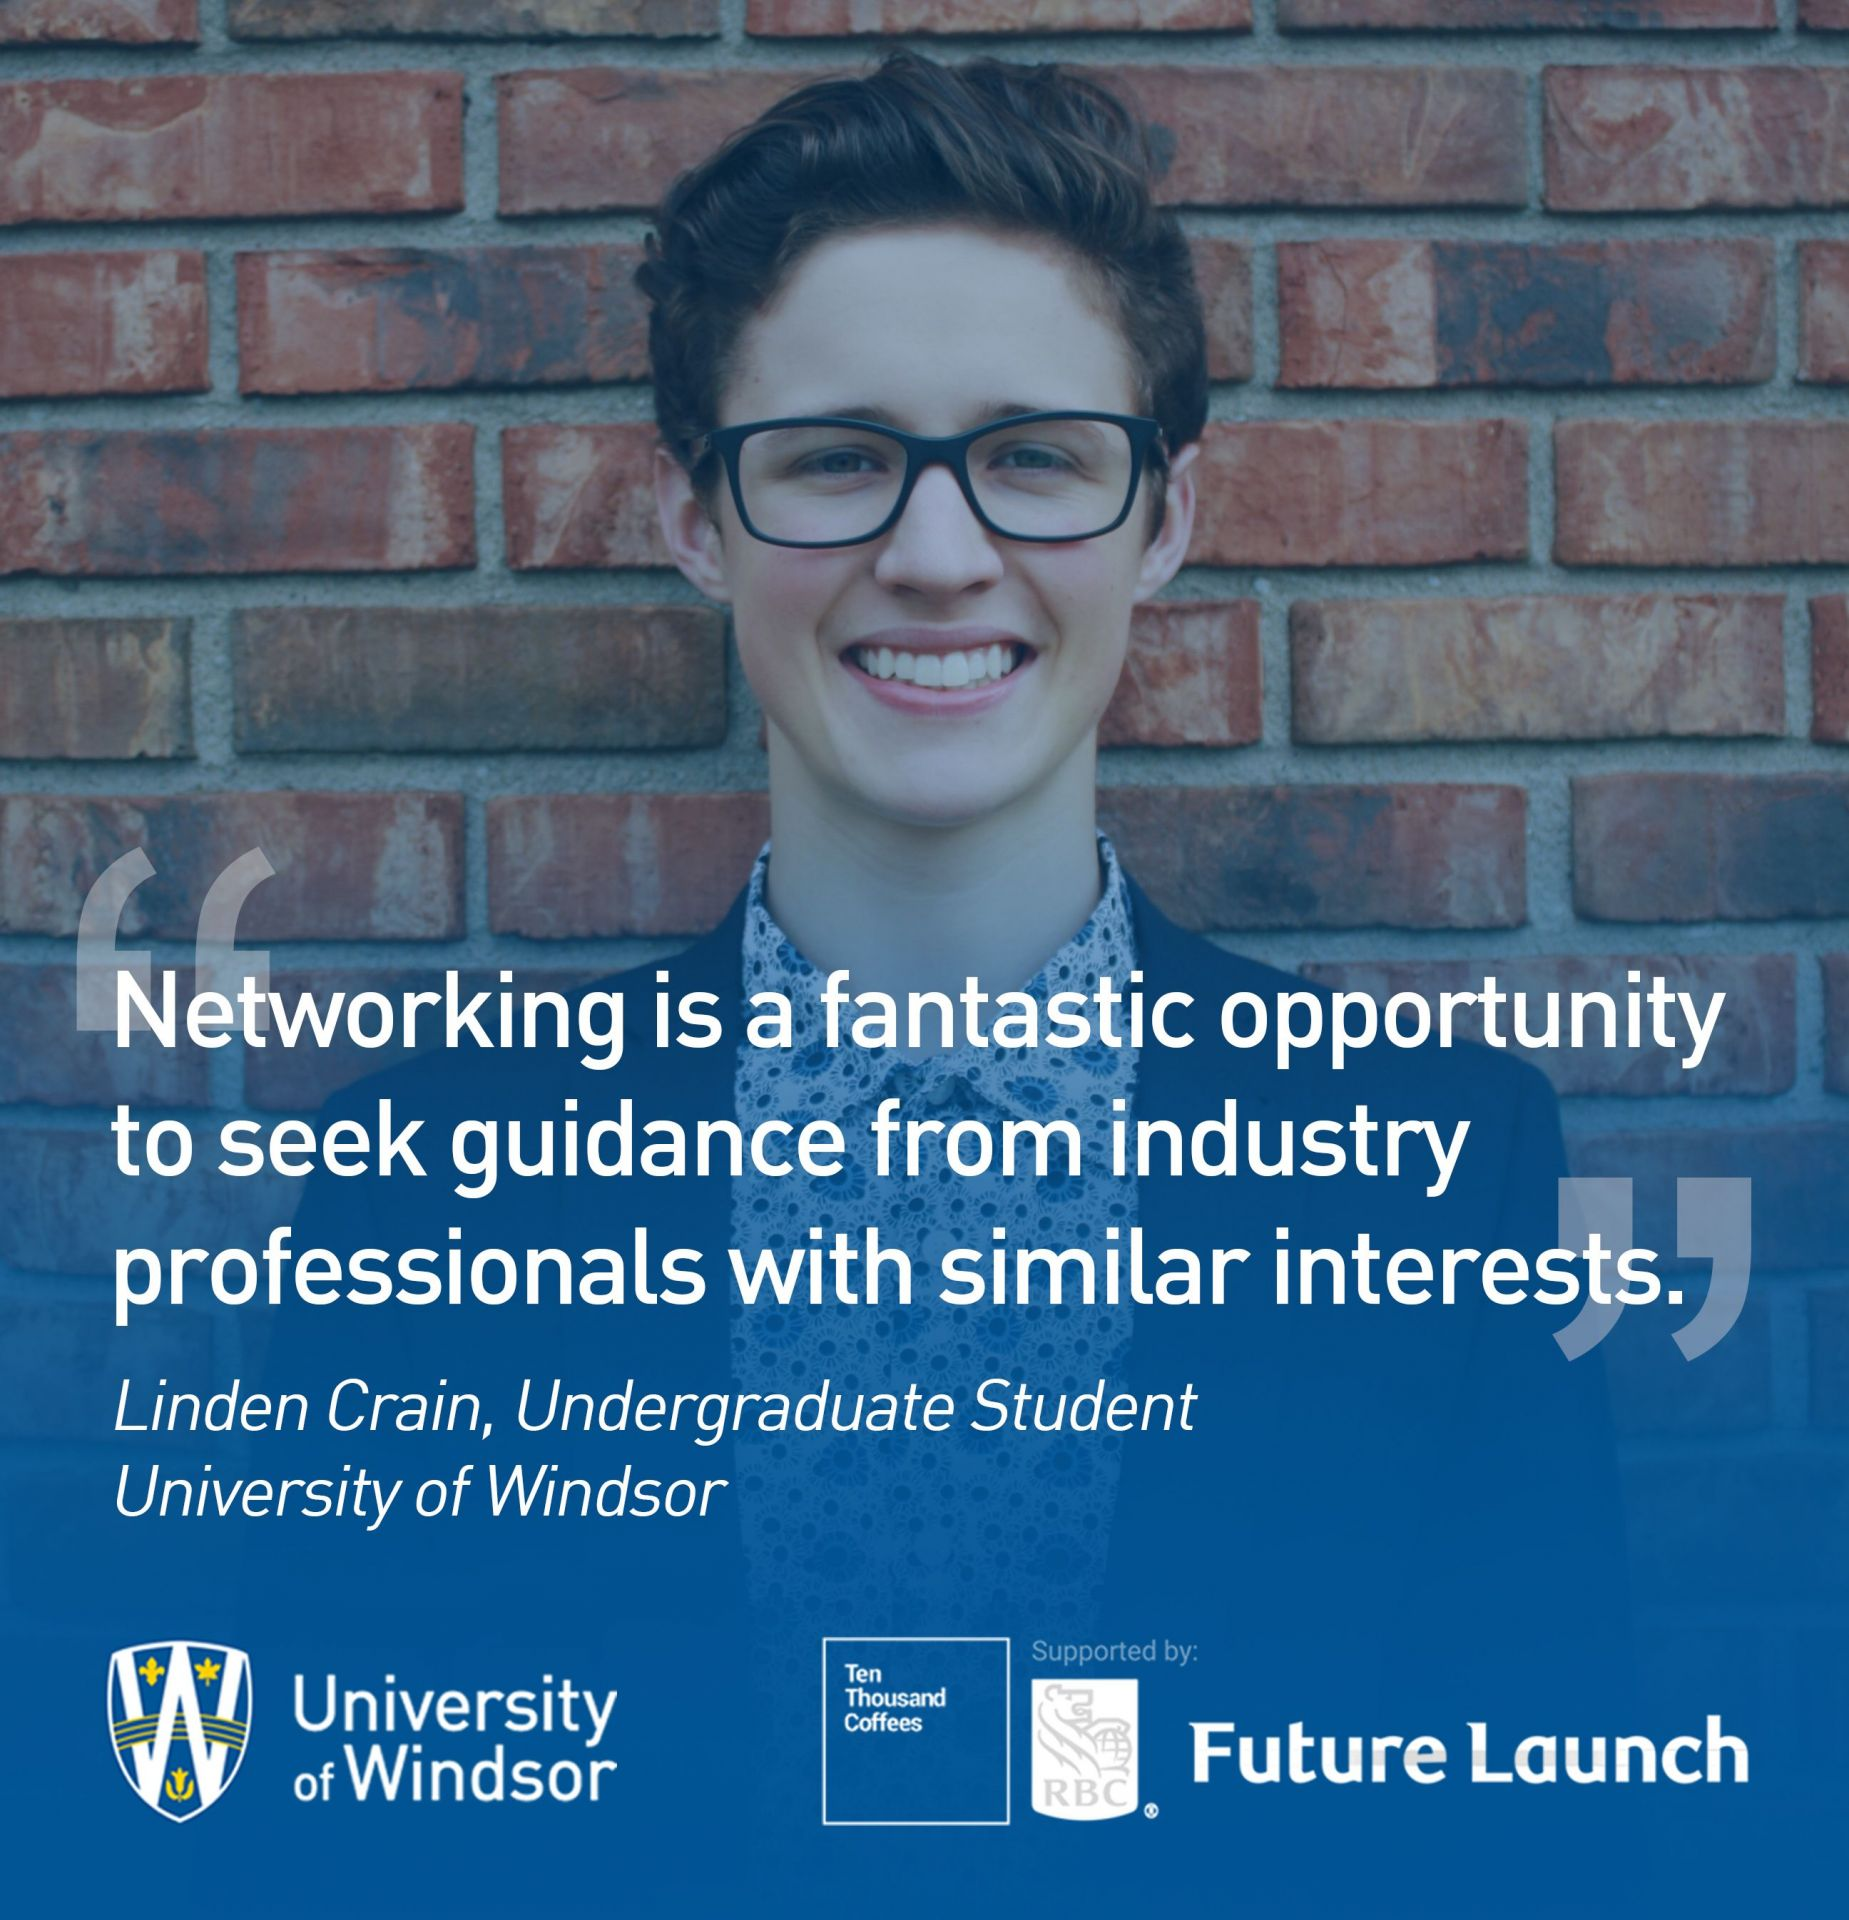 """""""Networking is a fantastic opportunity to seek guidance from industry professionals with similar interests,"""" says Linden Crain, undergraduate student at the University of Windsor"""